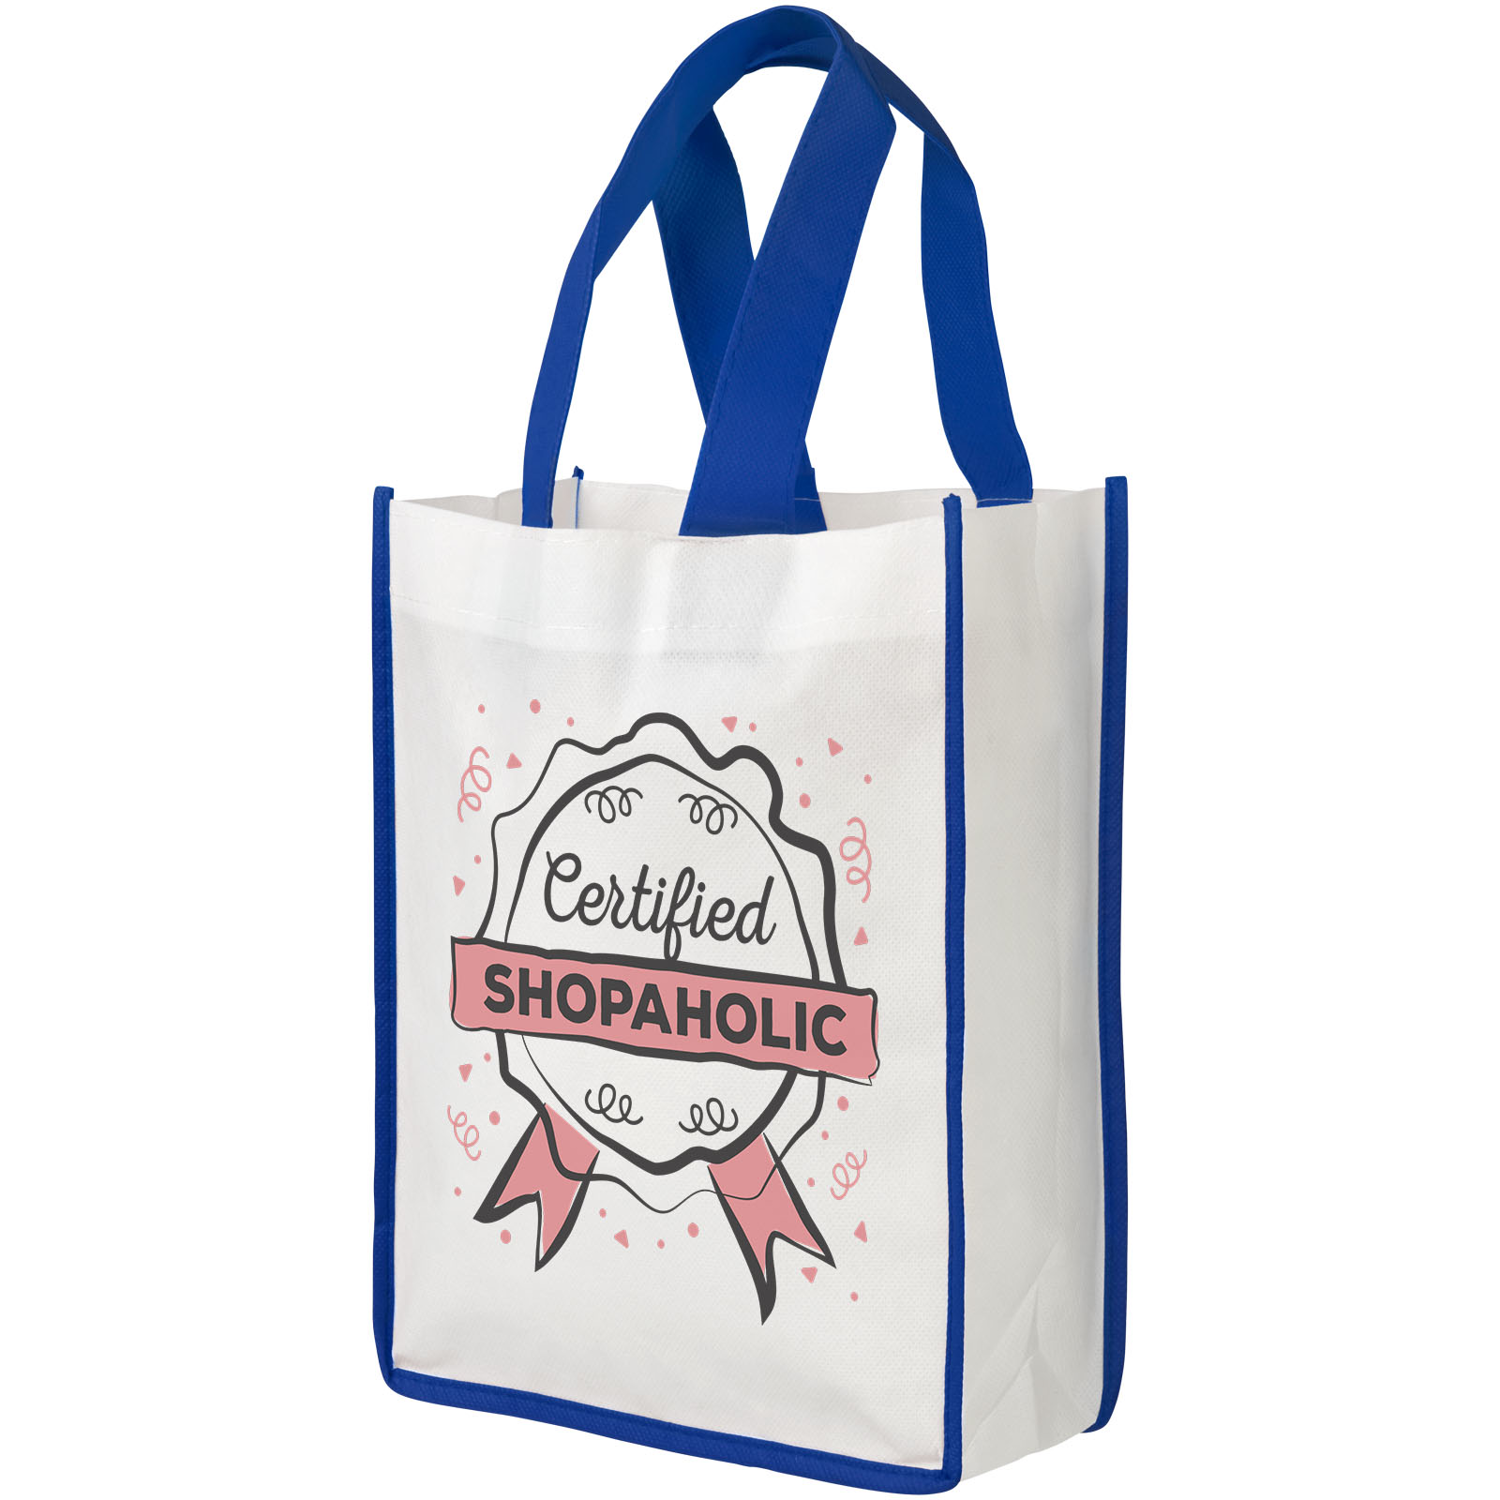 Contrast Small Non-Woven Shopping Tote Bag